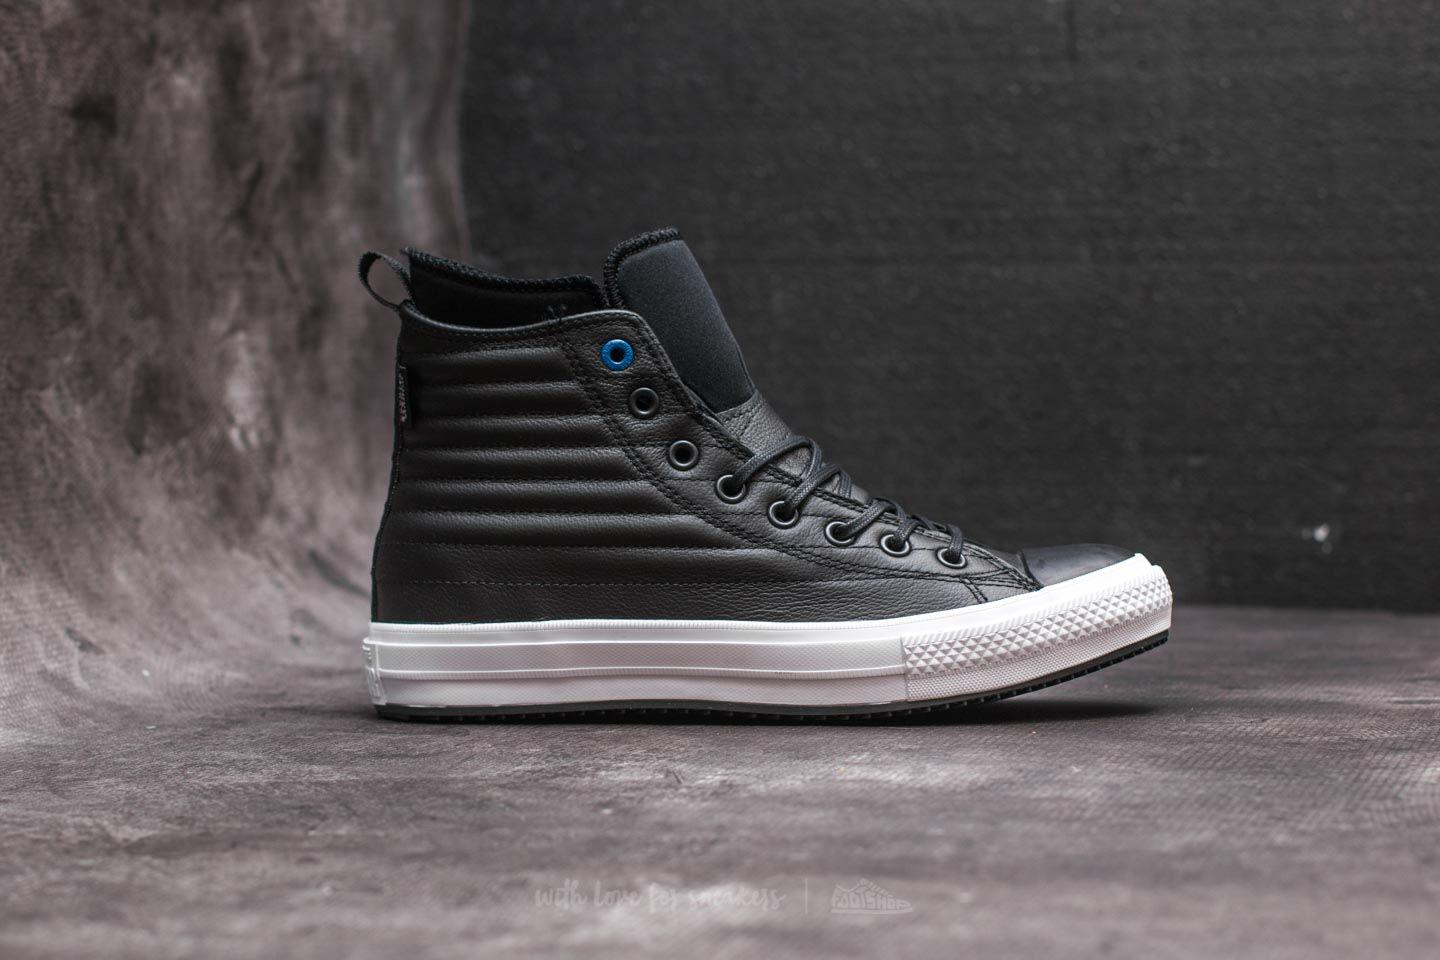 converse waterproof quilted leather